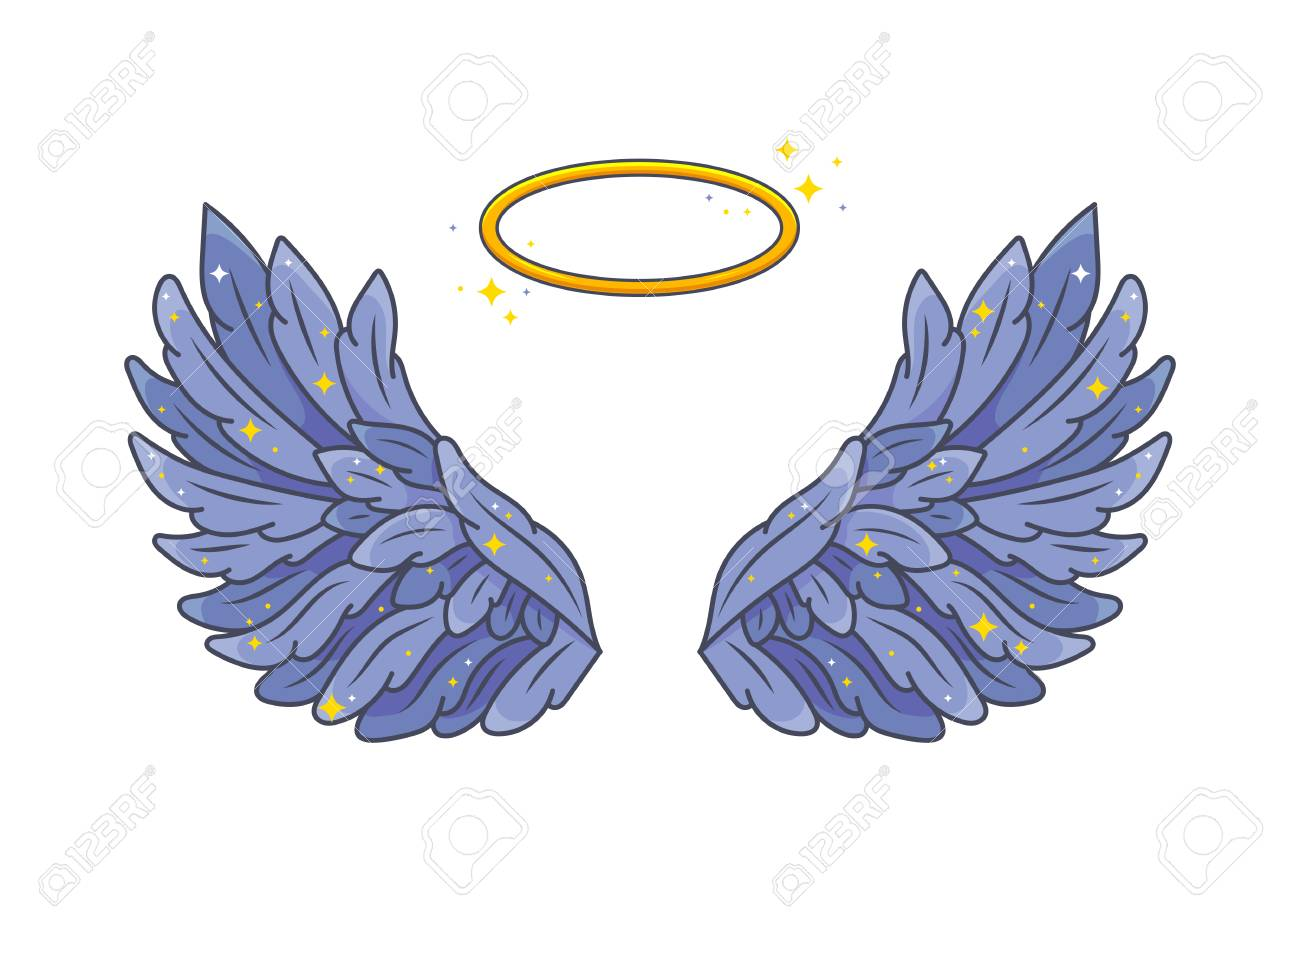 67a136da6 A pair of wide spread angel wings with golden halo or nimbus. Deep violet  feathers